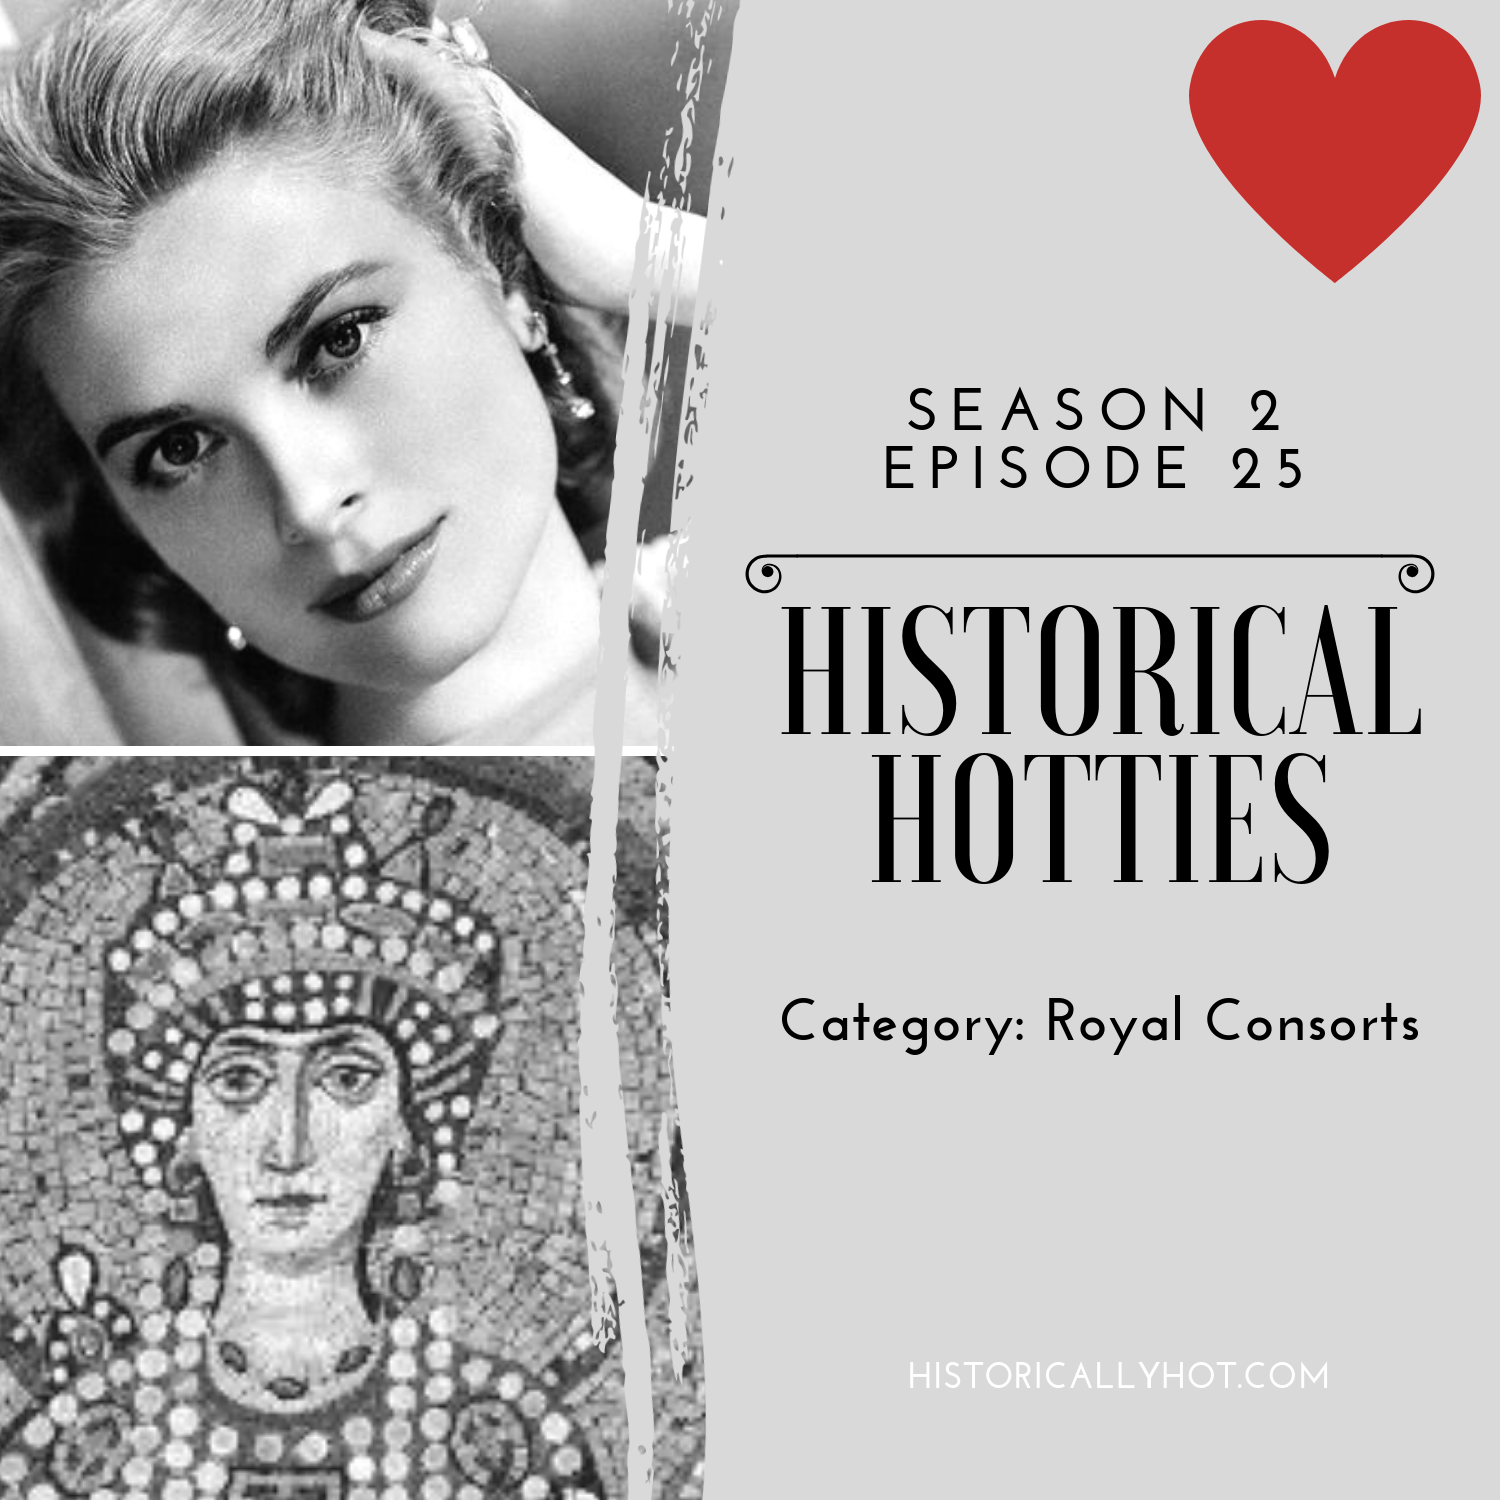 historical hotties royal consorts